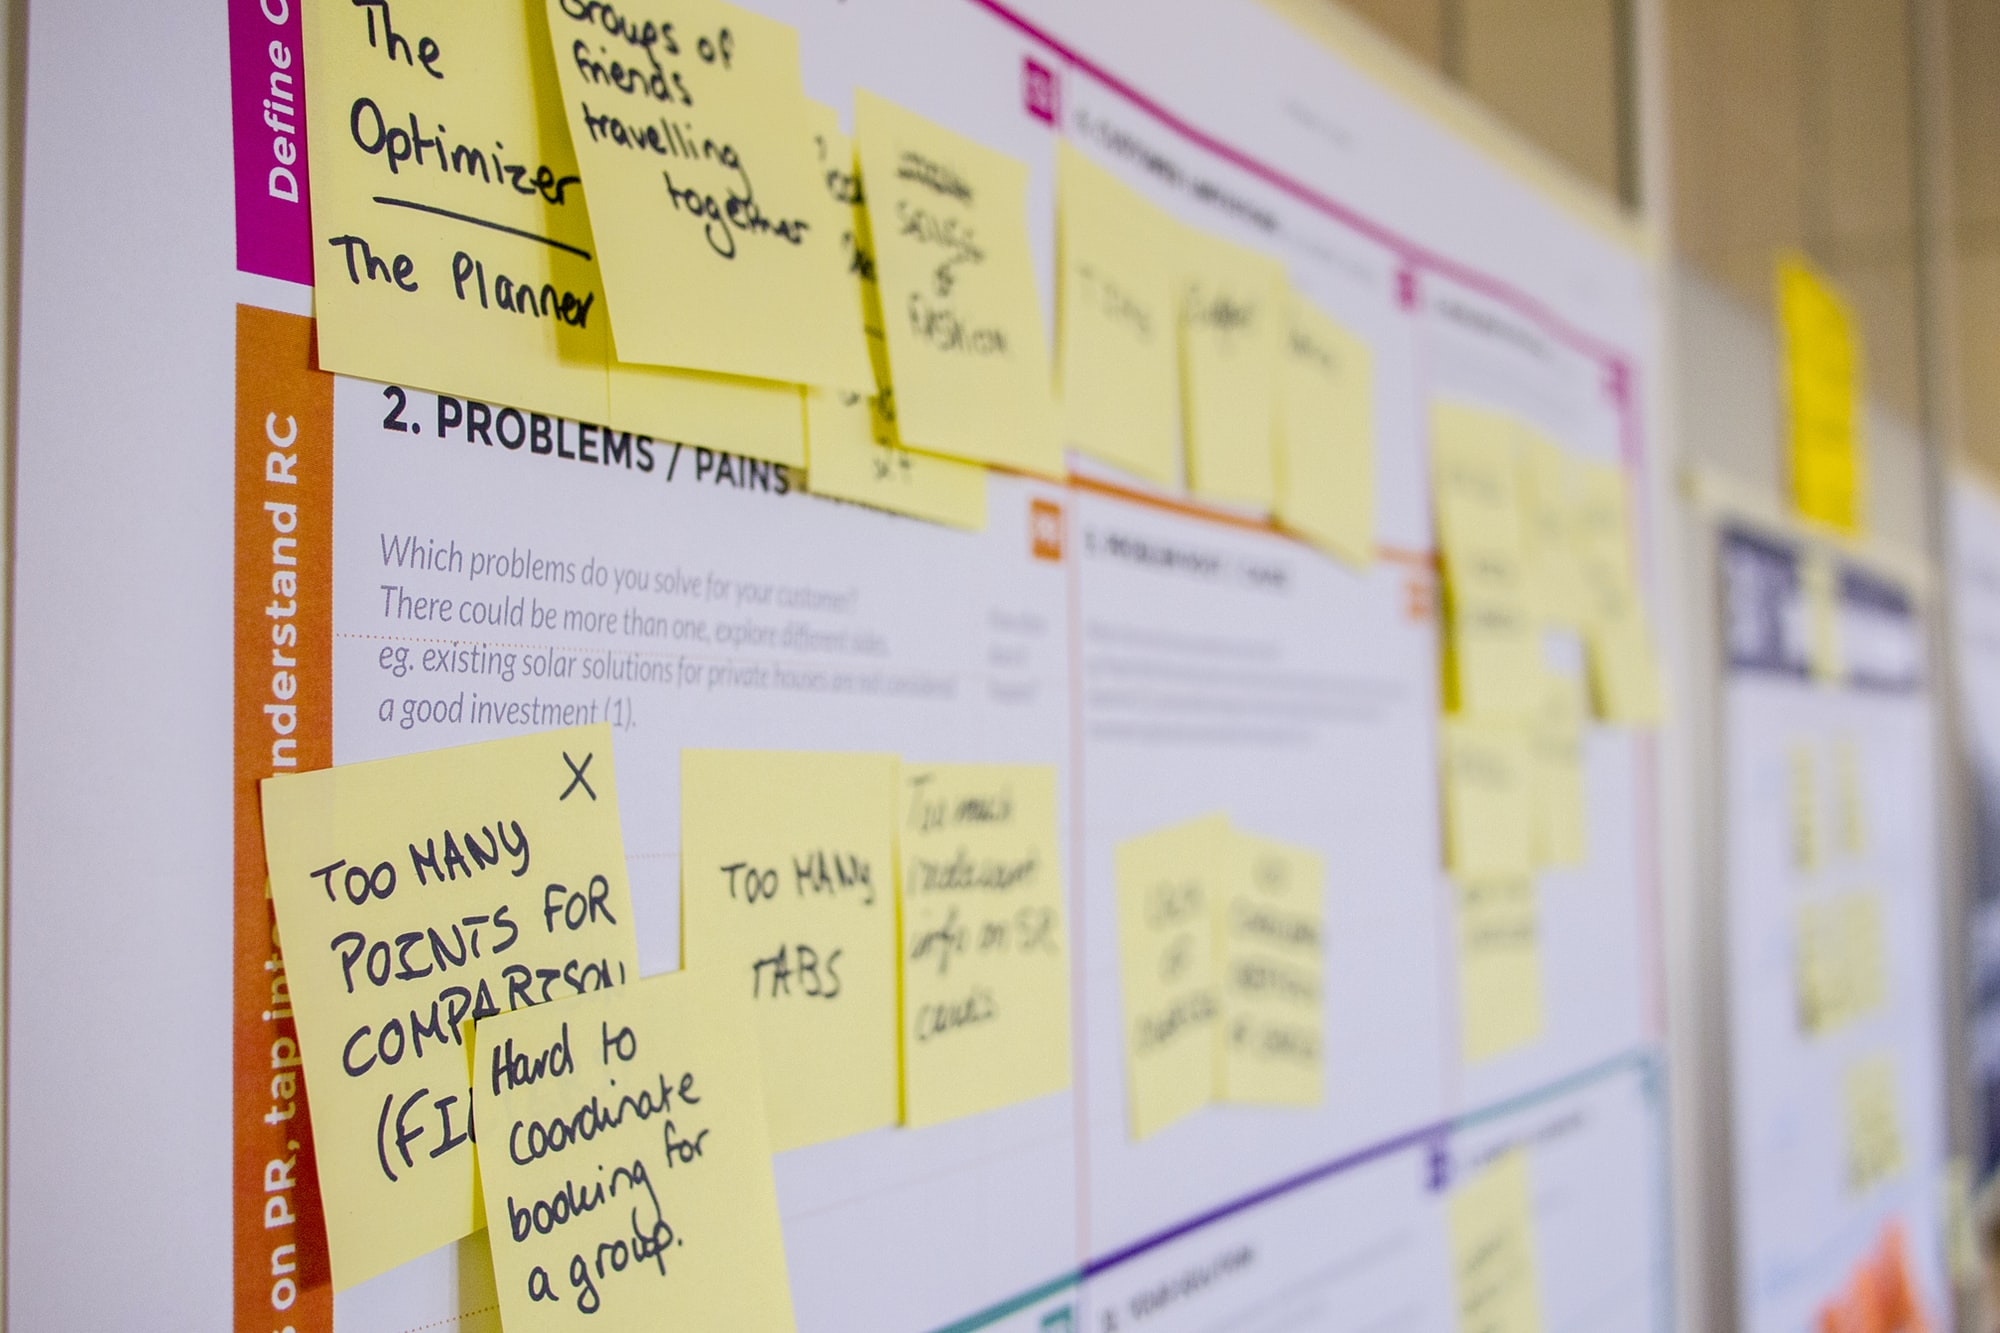 Top Tips for Preparing for a Career in Product Management (A Cynical Joke Thread)